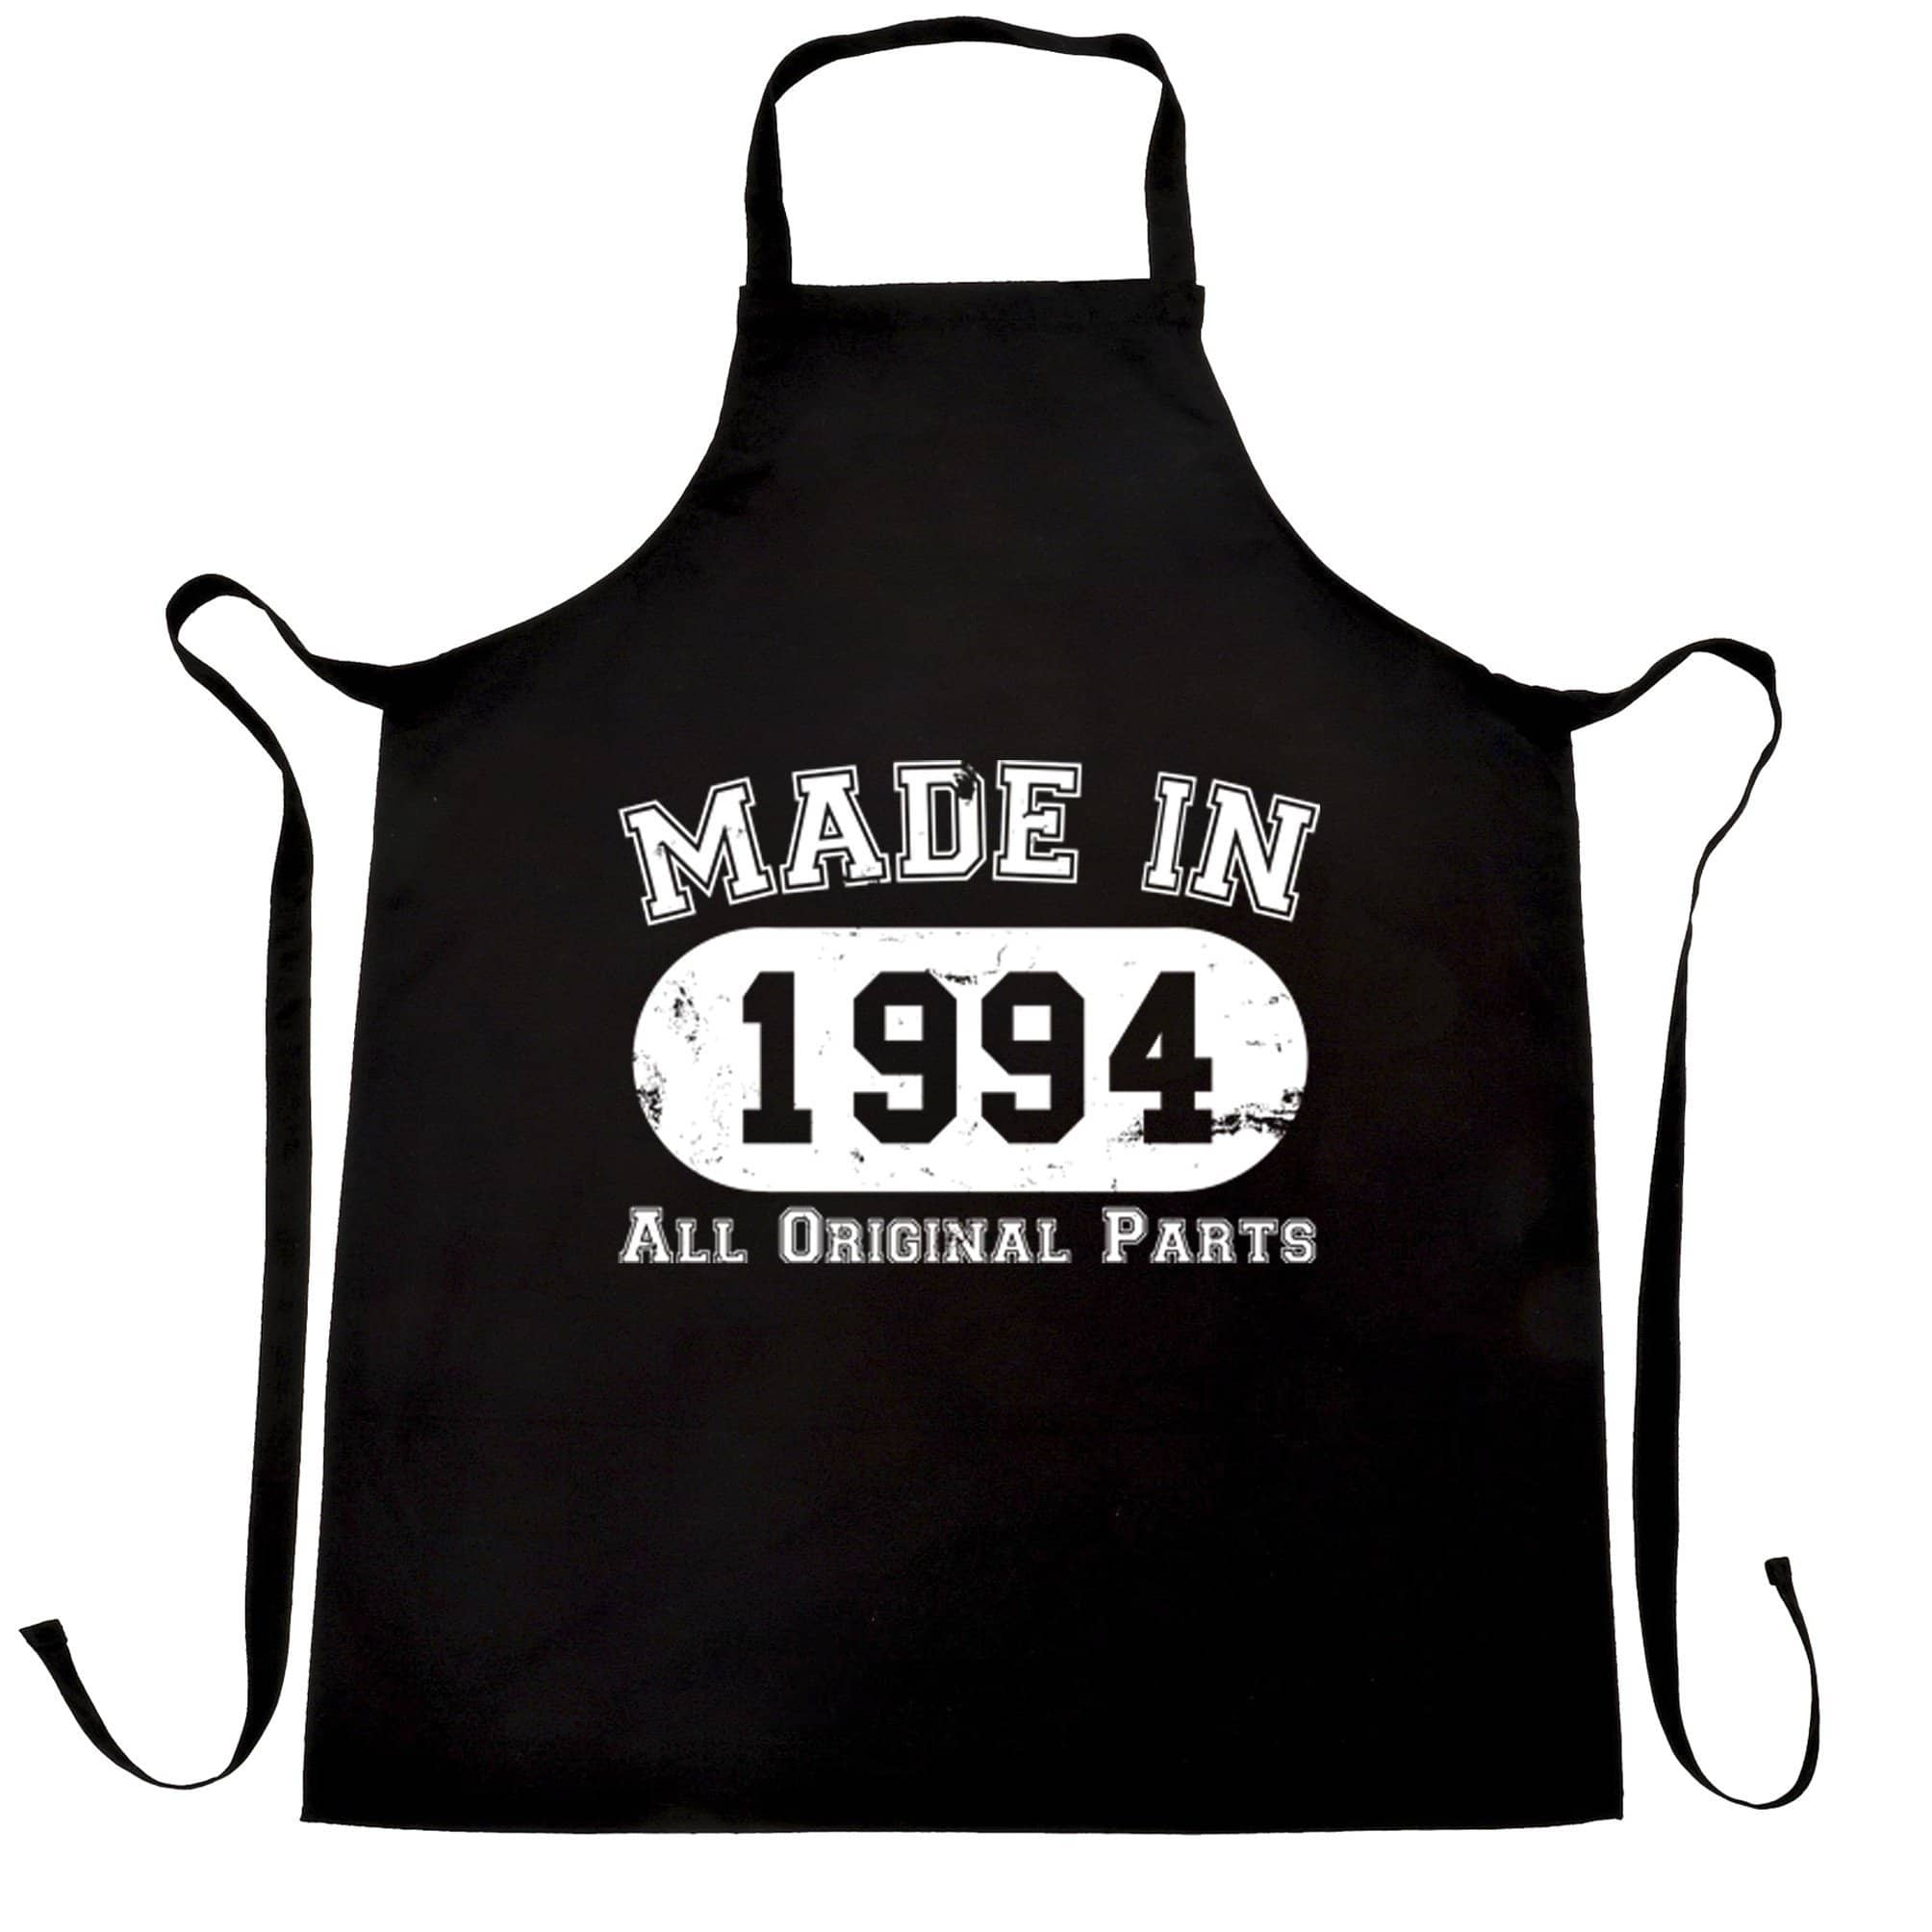 Made in 1994 All Original Parts Apron [Distressed]